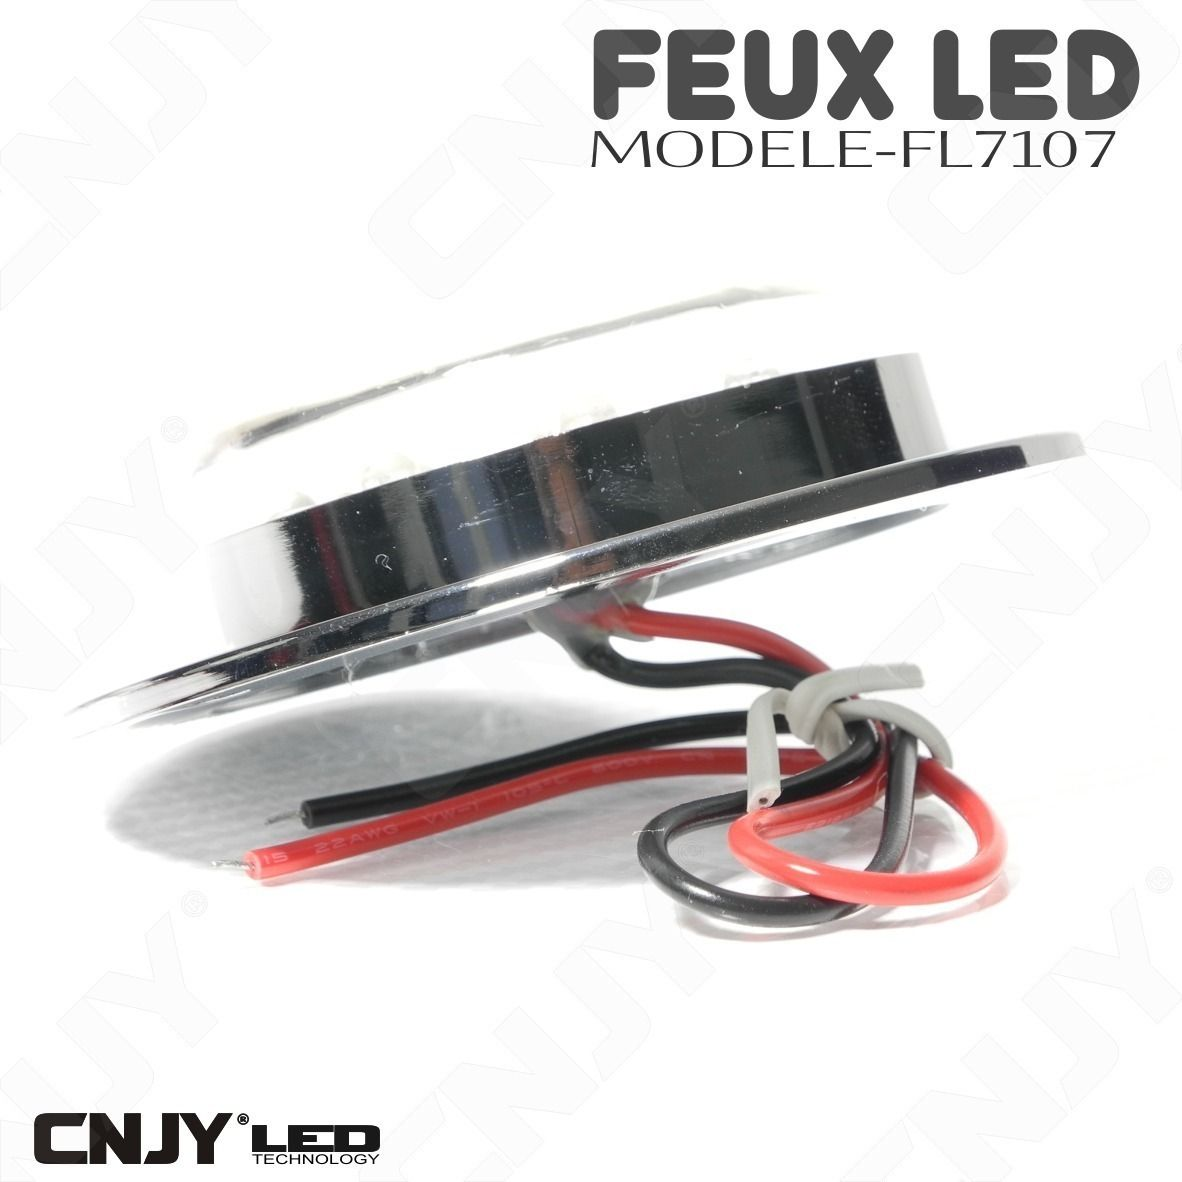 feux,de,gabarit,stop,position,a,led,rouge,orange,12v,24v,etanche,ip68,pour,auto,moto,quad,camion,remorque,CHOPPER,MOTARD